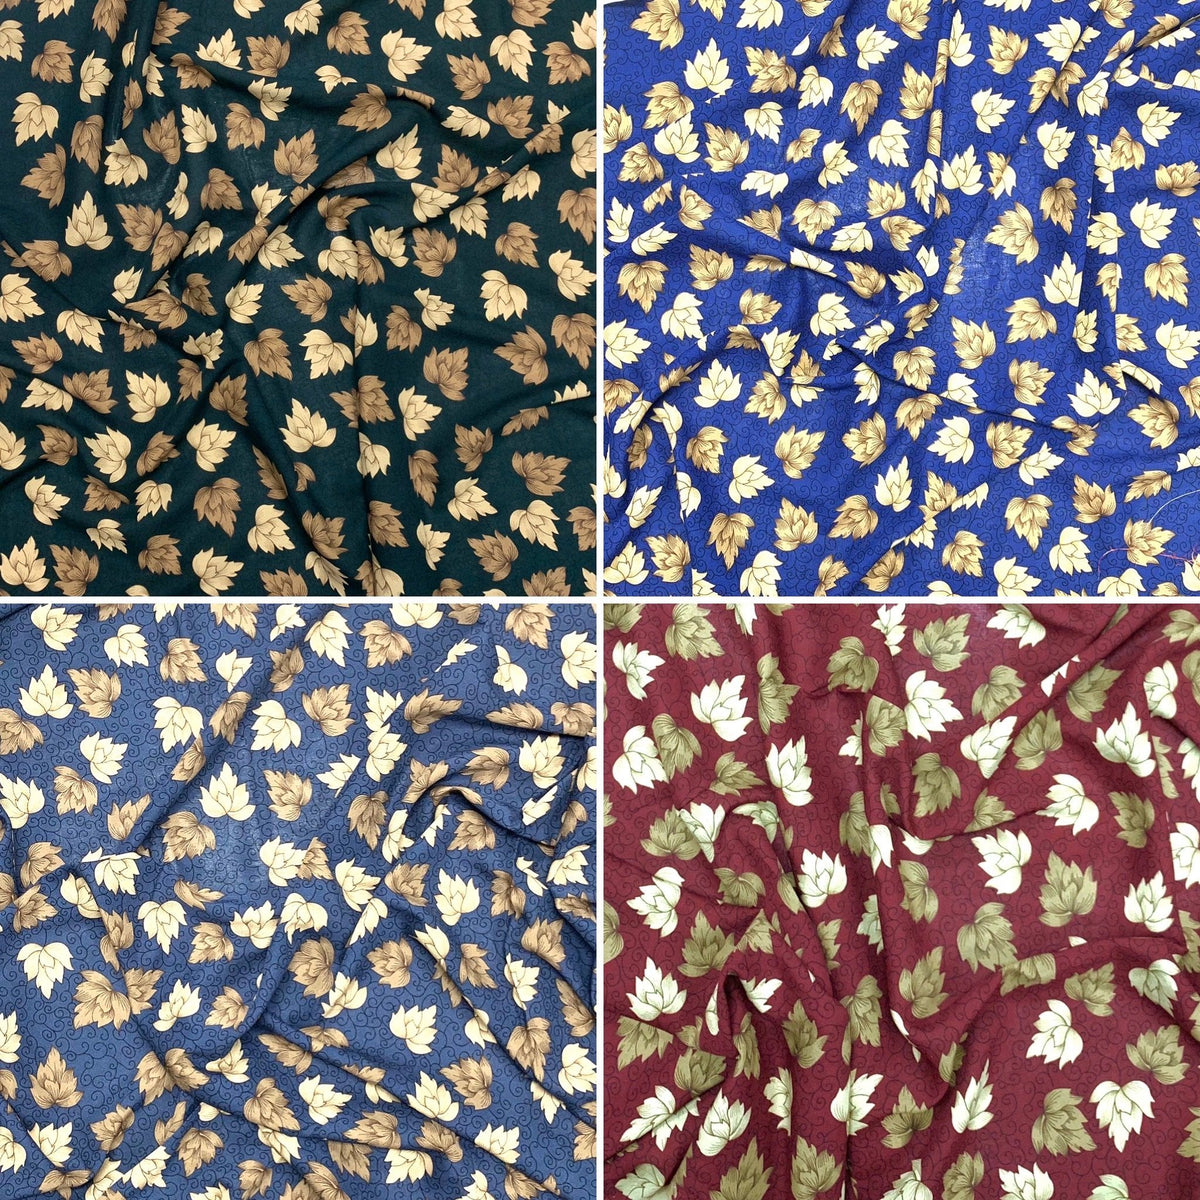 Bunches of Leaves Viscose Fabric